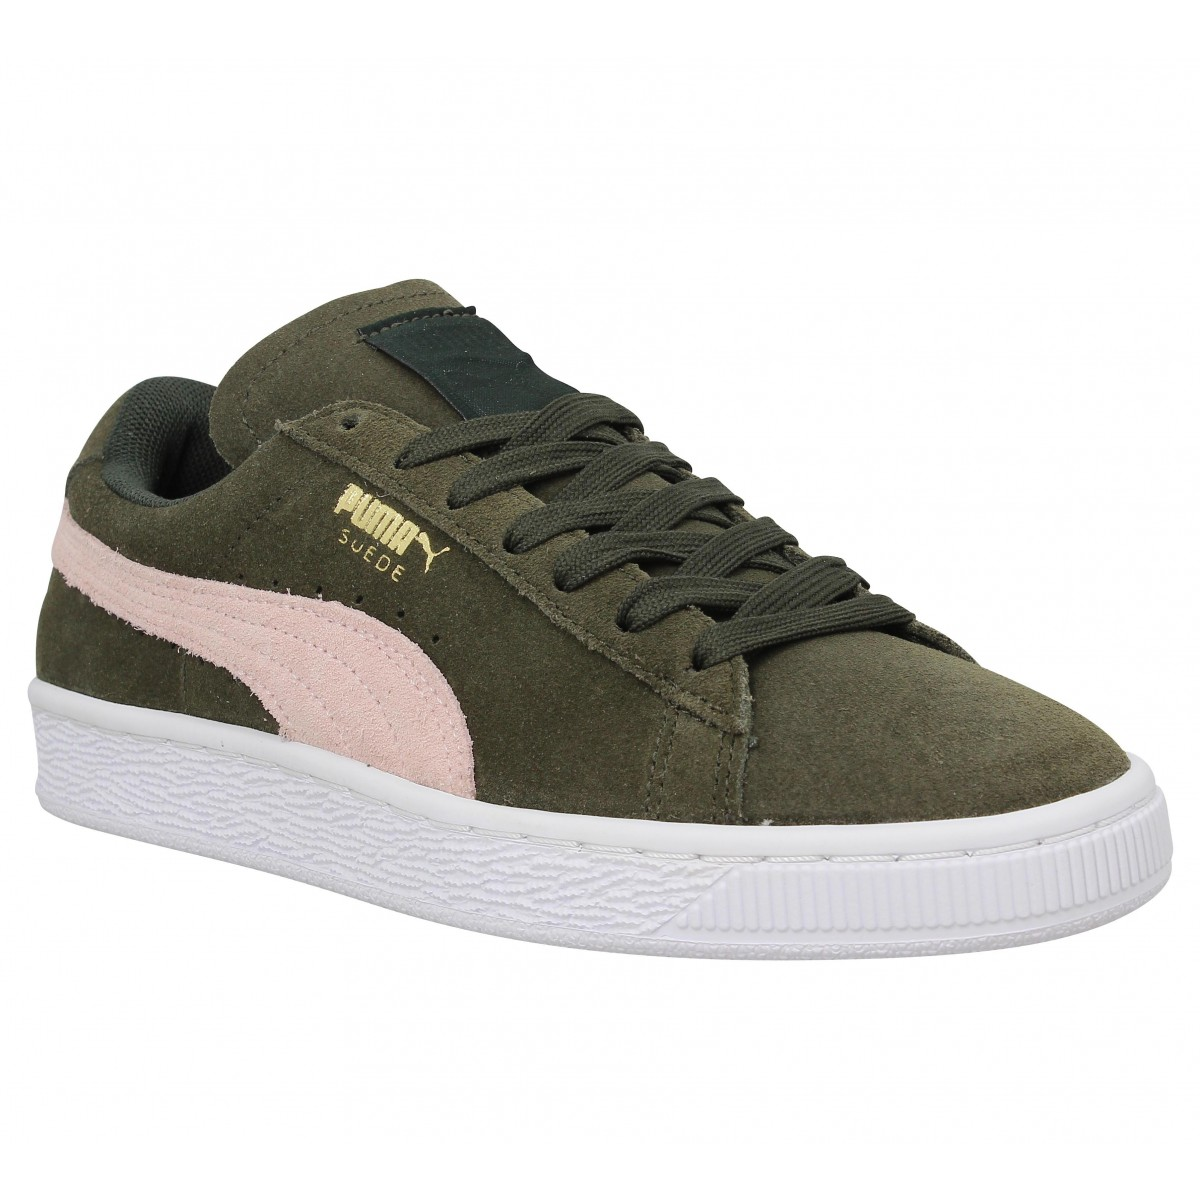 plus récent 8bab7 16649 PUMA Suede Classic velours Forest night Rose